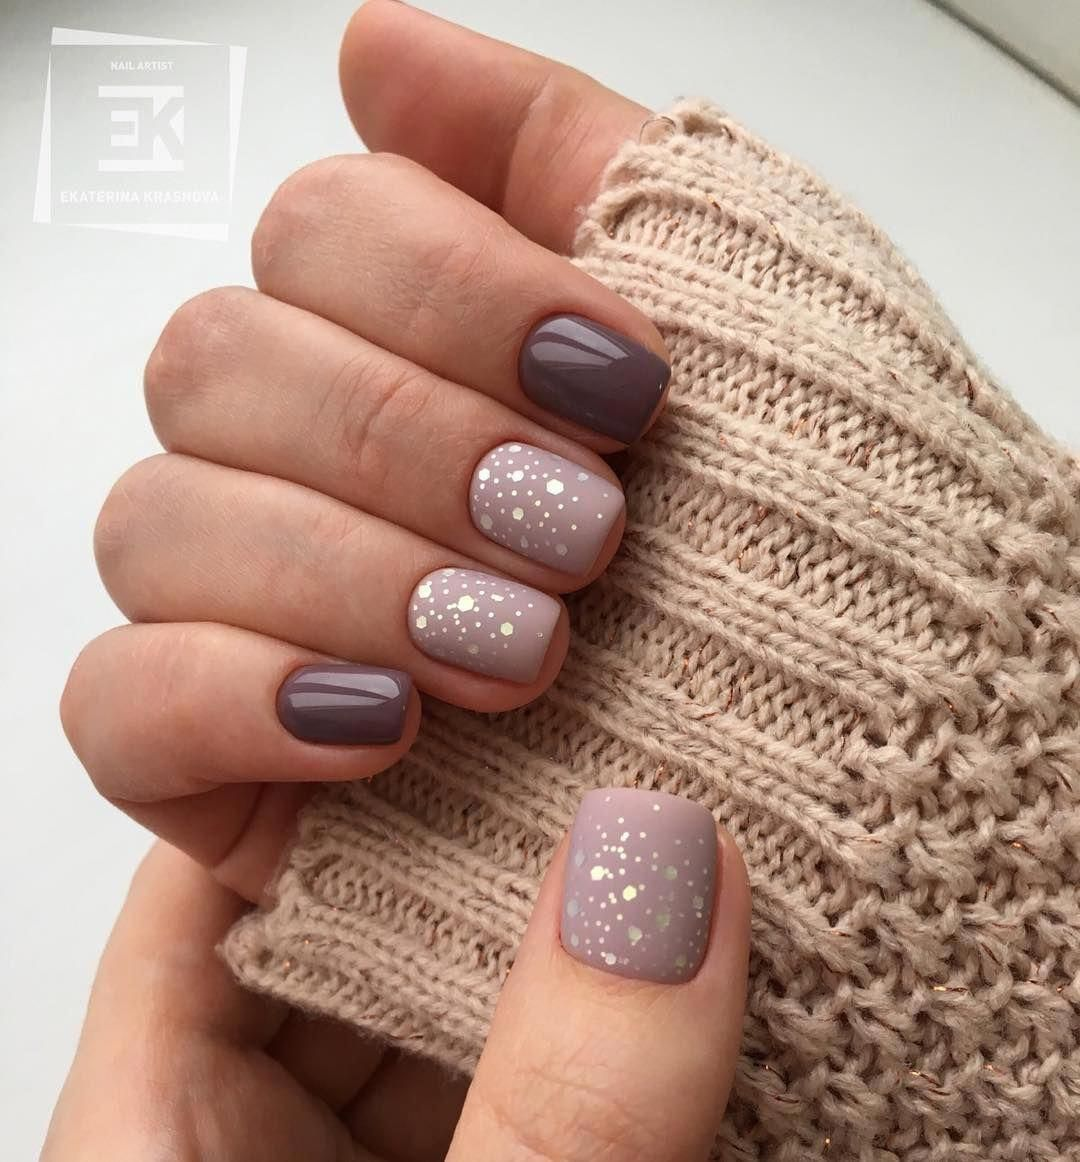 16 Stunning Nail Art Trend Ideas for 2020!